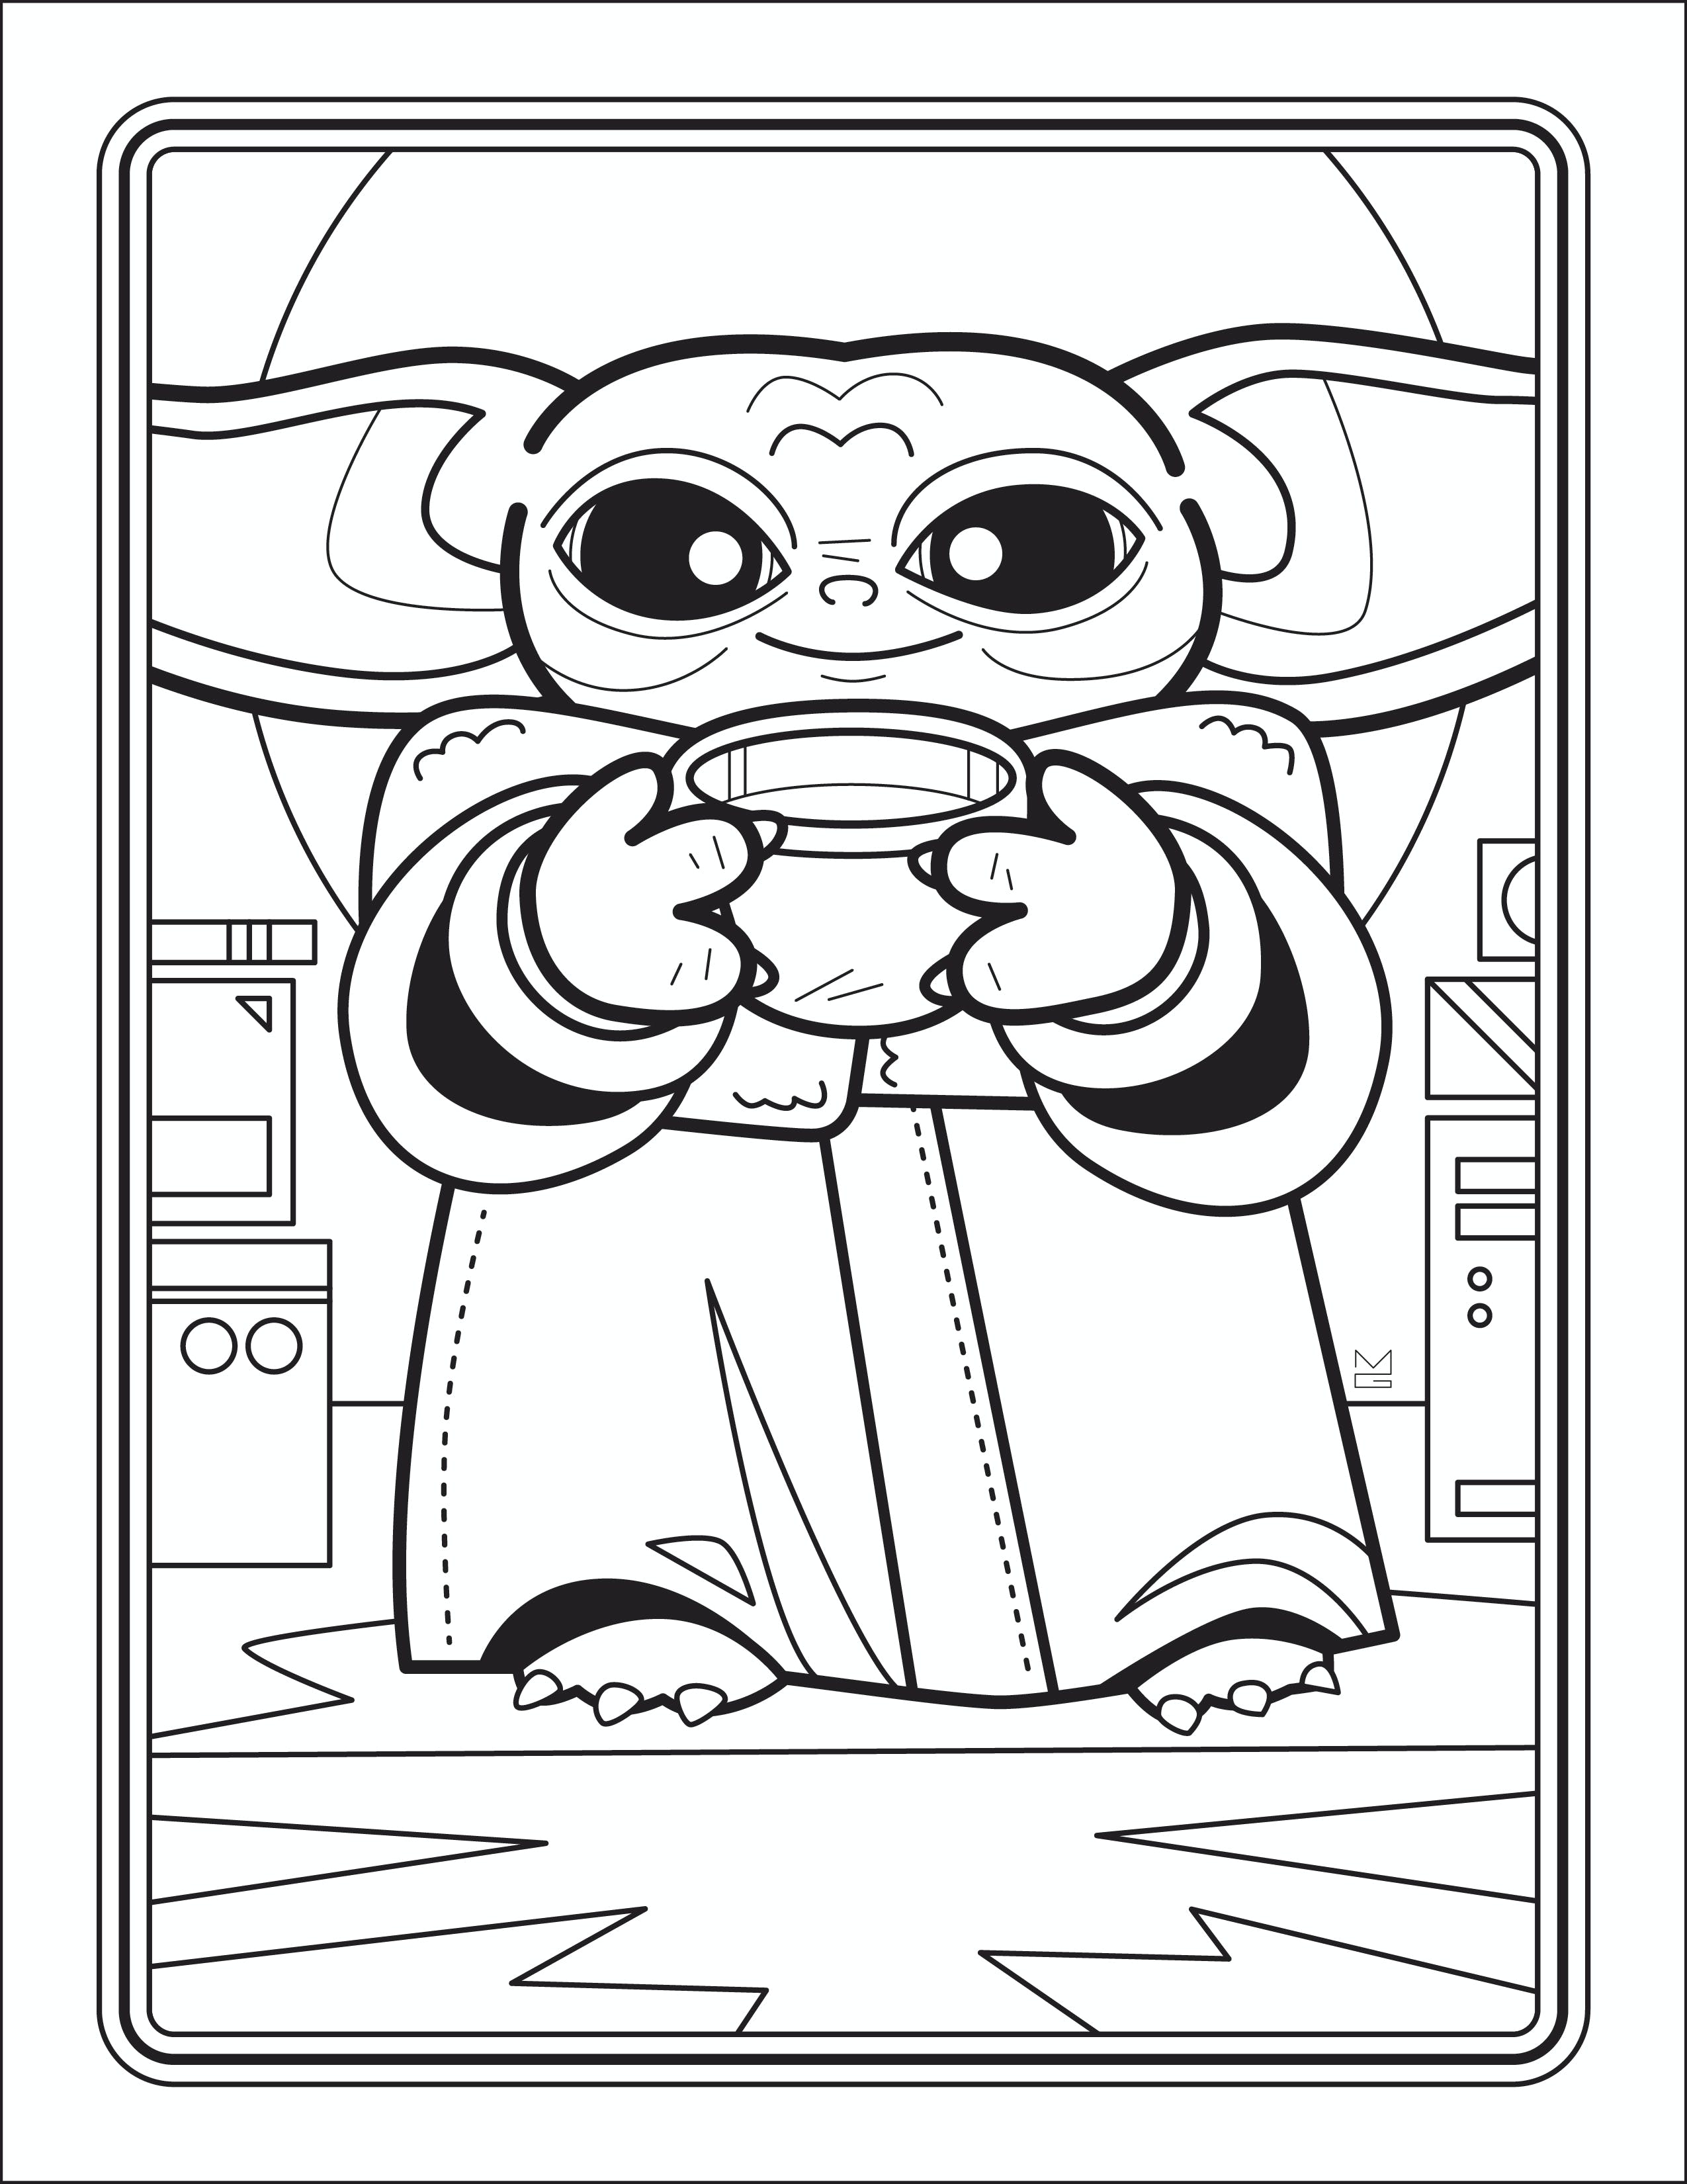 Free Coloring Pages for Kids or Adults Who Still Have Fun - The Krazy  Coupon Lady